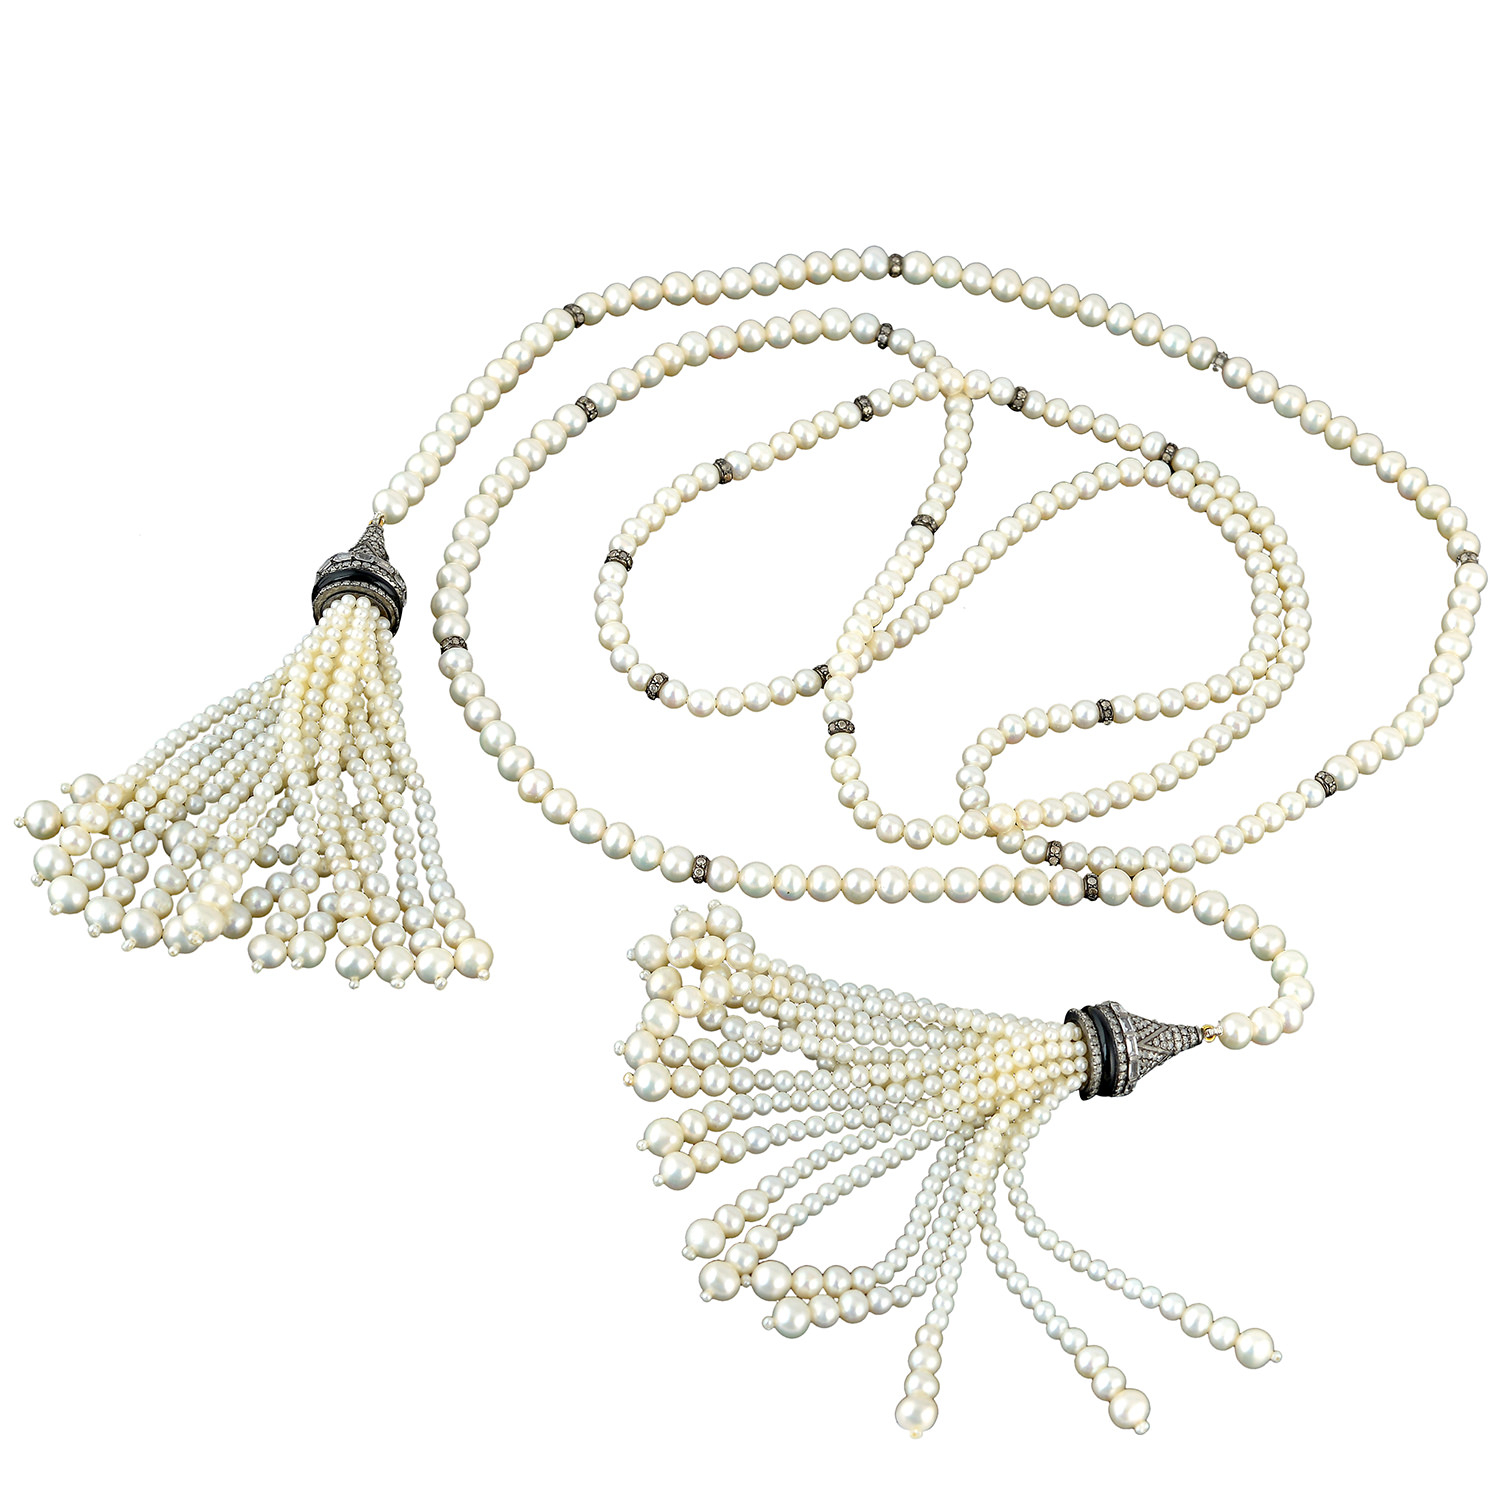 Details About Pave Diamond Sapphire Onyx Pearl Beads 18k Gold Rope/lariat Necklace 925 Silver In Most Popular Beads & Pavé Necklaces (Gallery 3 of 25)